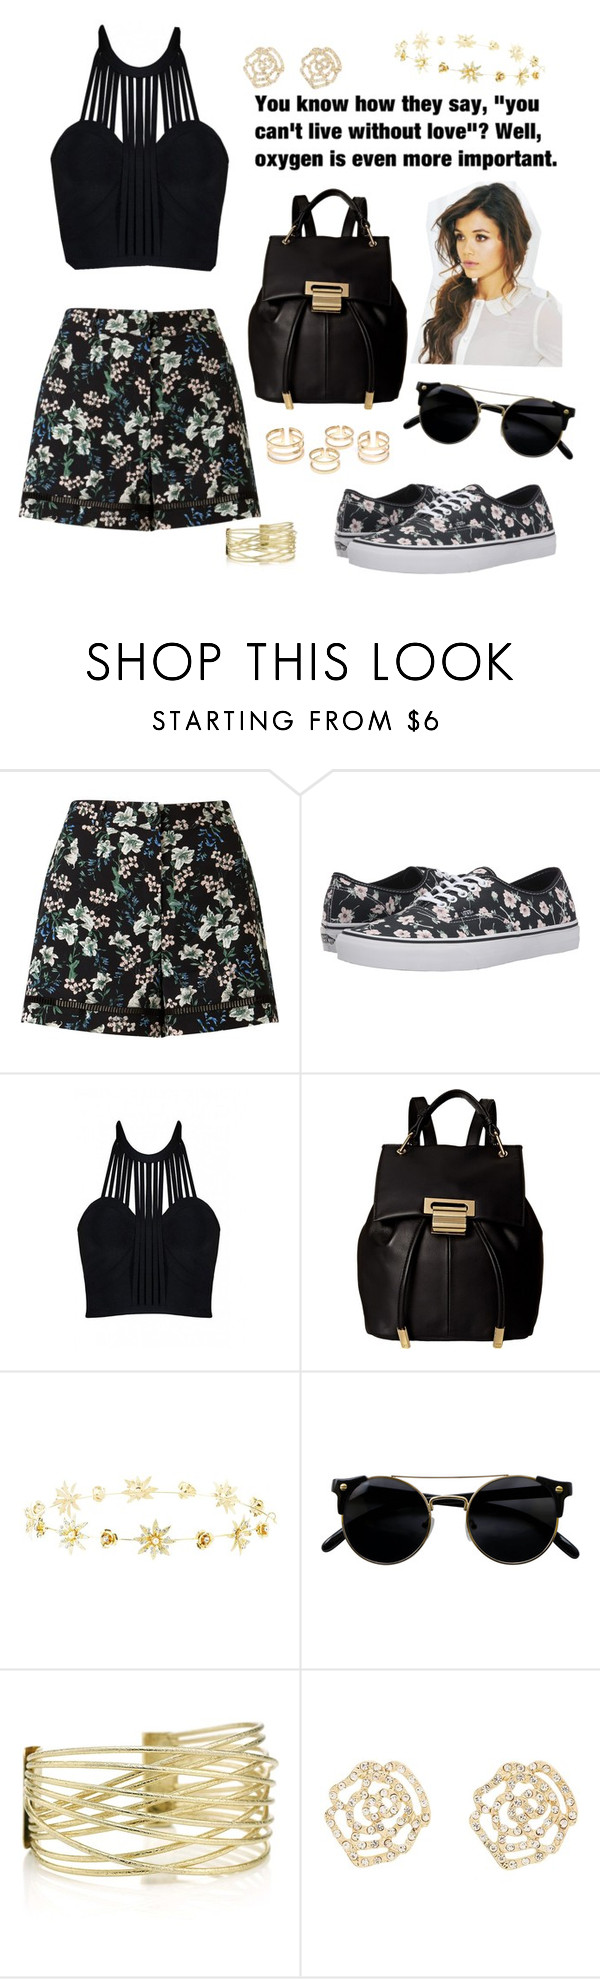 """~Floral shorts~"" by bubblegum59 ❤ liked on Polyvore featuring Miss Selfridge, Vans, Posh Girl, Ivanka Trump and Charlotte Russe"